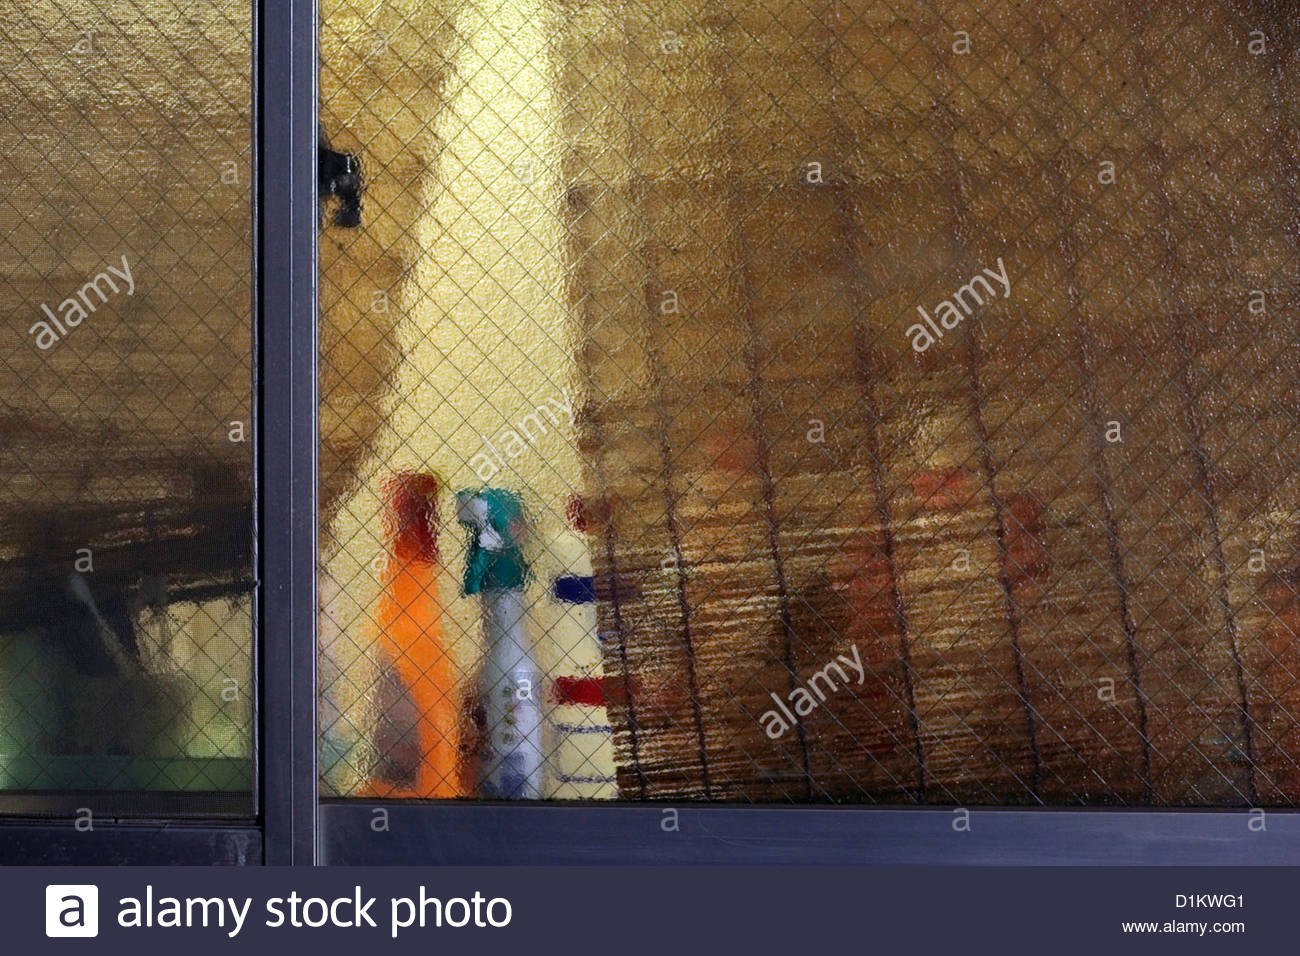 kitchen window with cleaning bottles during night - Stock Image